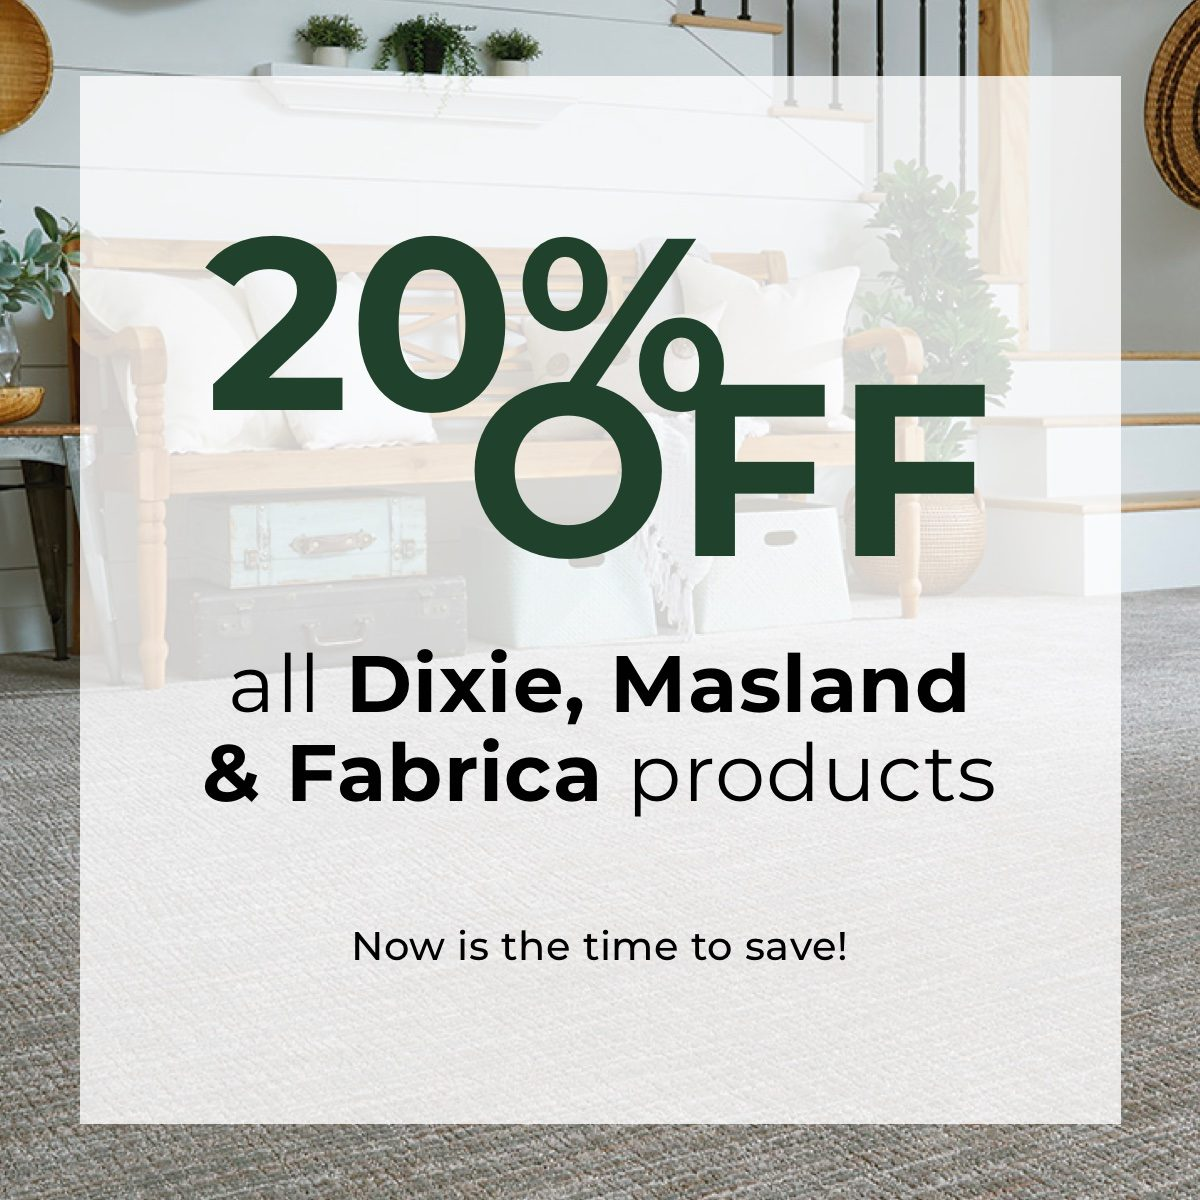 20 off all Dixie, Masland & Fabrica products - now is the time to save!